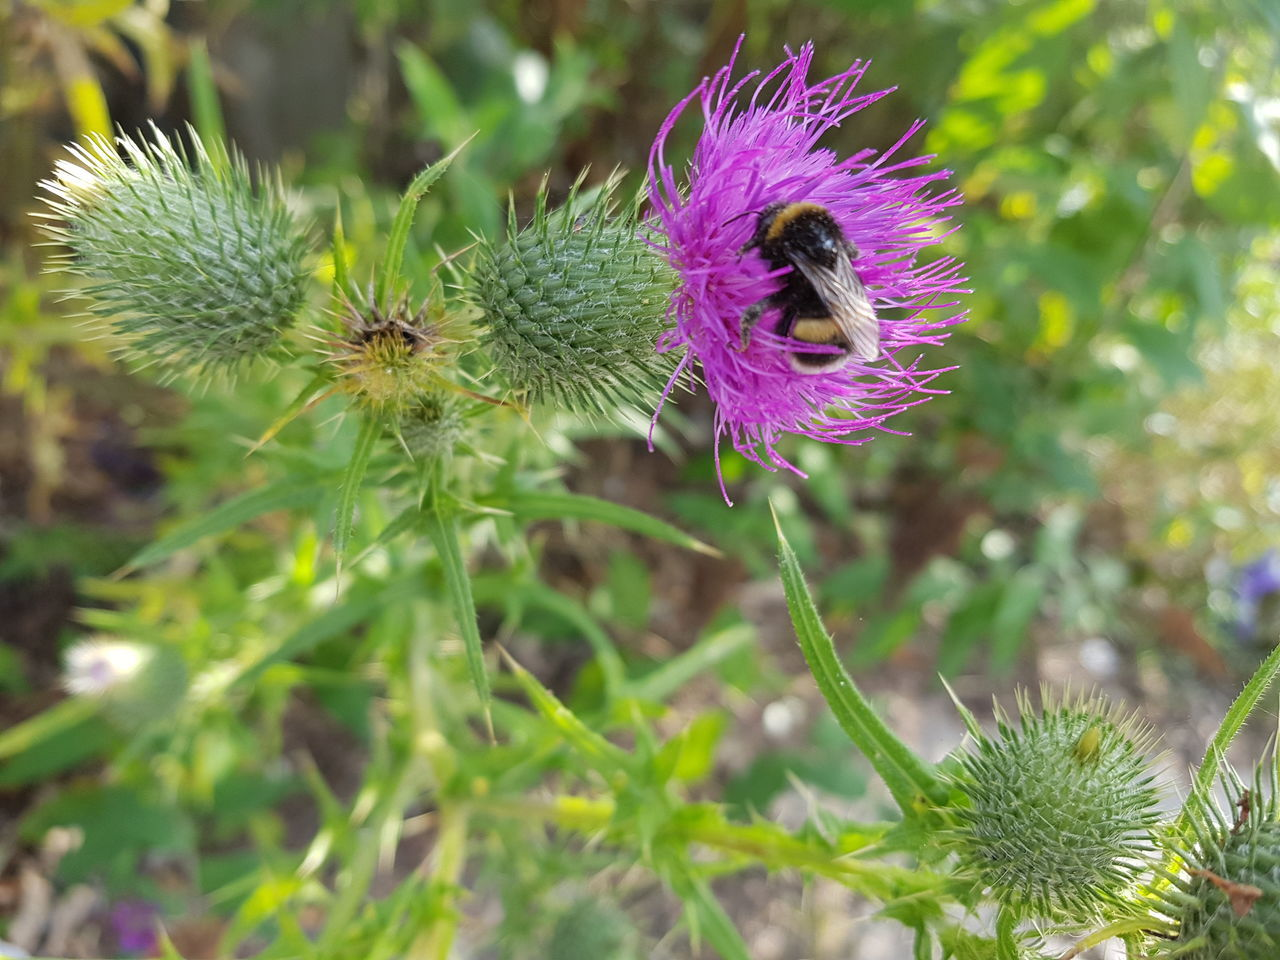 flower, growth, nature, one animal, purple, plant, insect, beauty in nature, animal themes, fragility, thistle, day, flower head, animals in the wild, petal, outdoors, focus on foreground, no people, pollination, freshness, green color, bee, close-up, blooming, bumblebee, passion flower